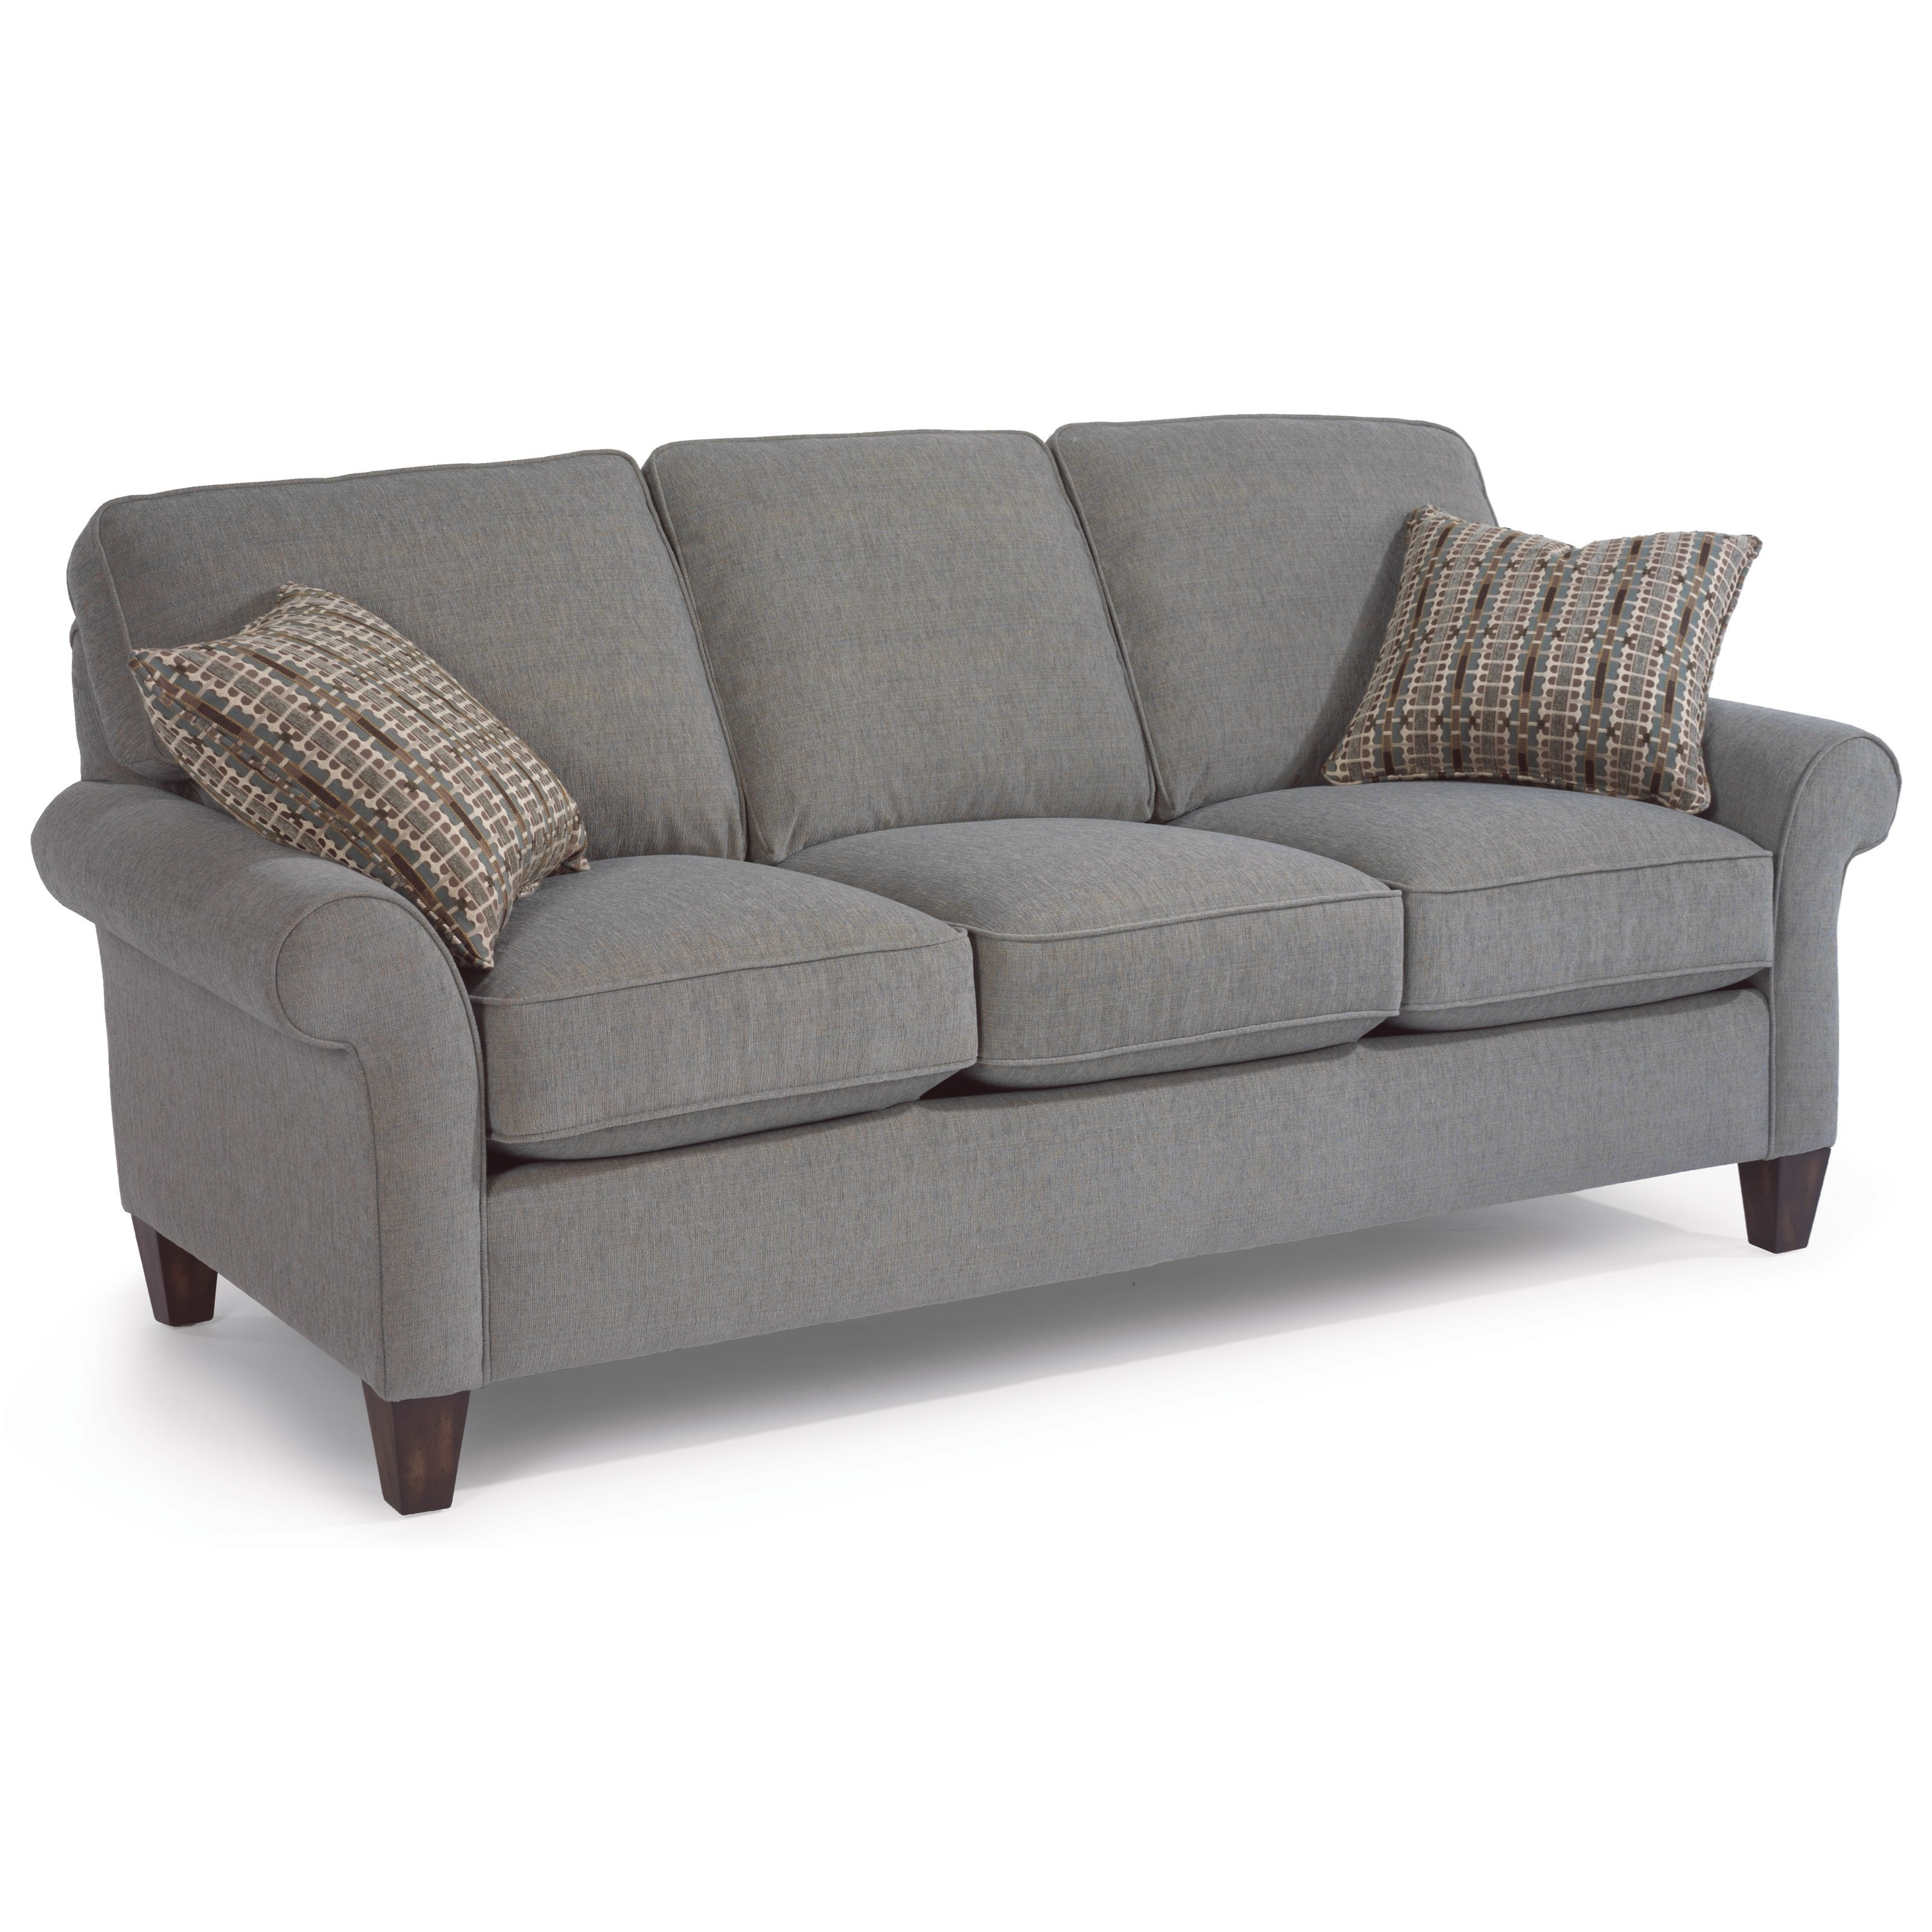 Flexsteel westside 5979 30 casual style sofa dunk for Casual couch